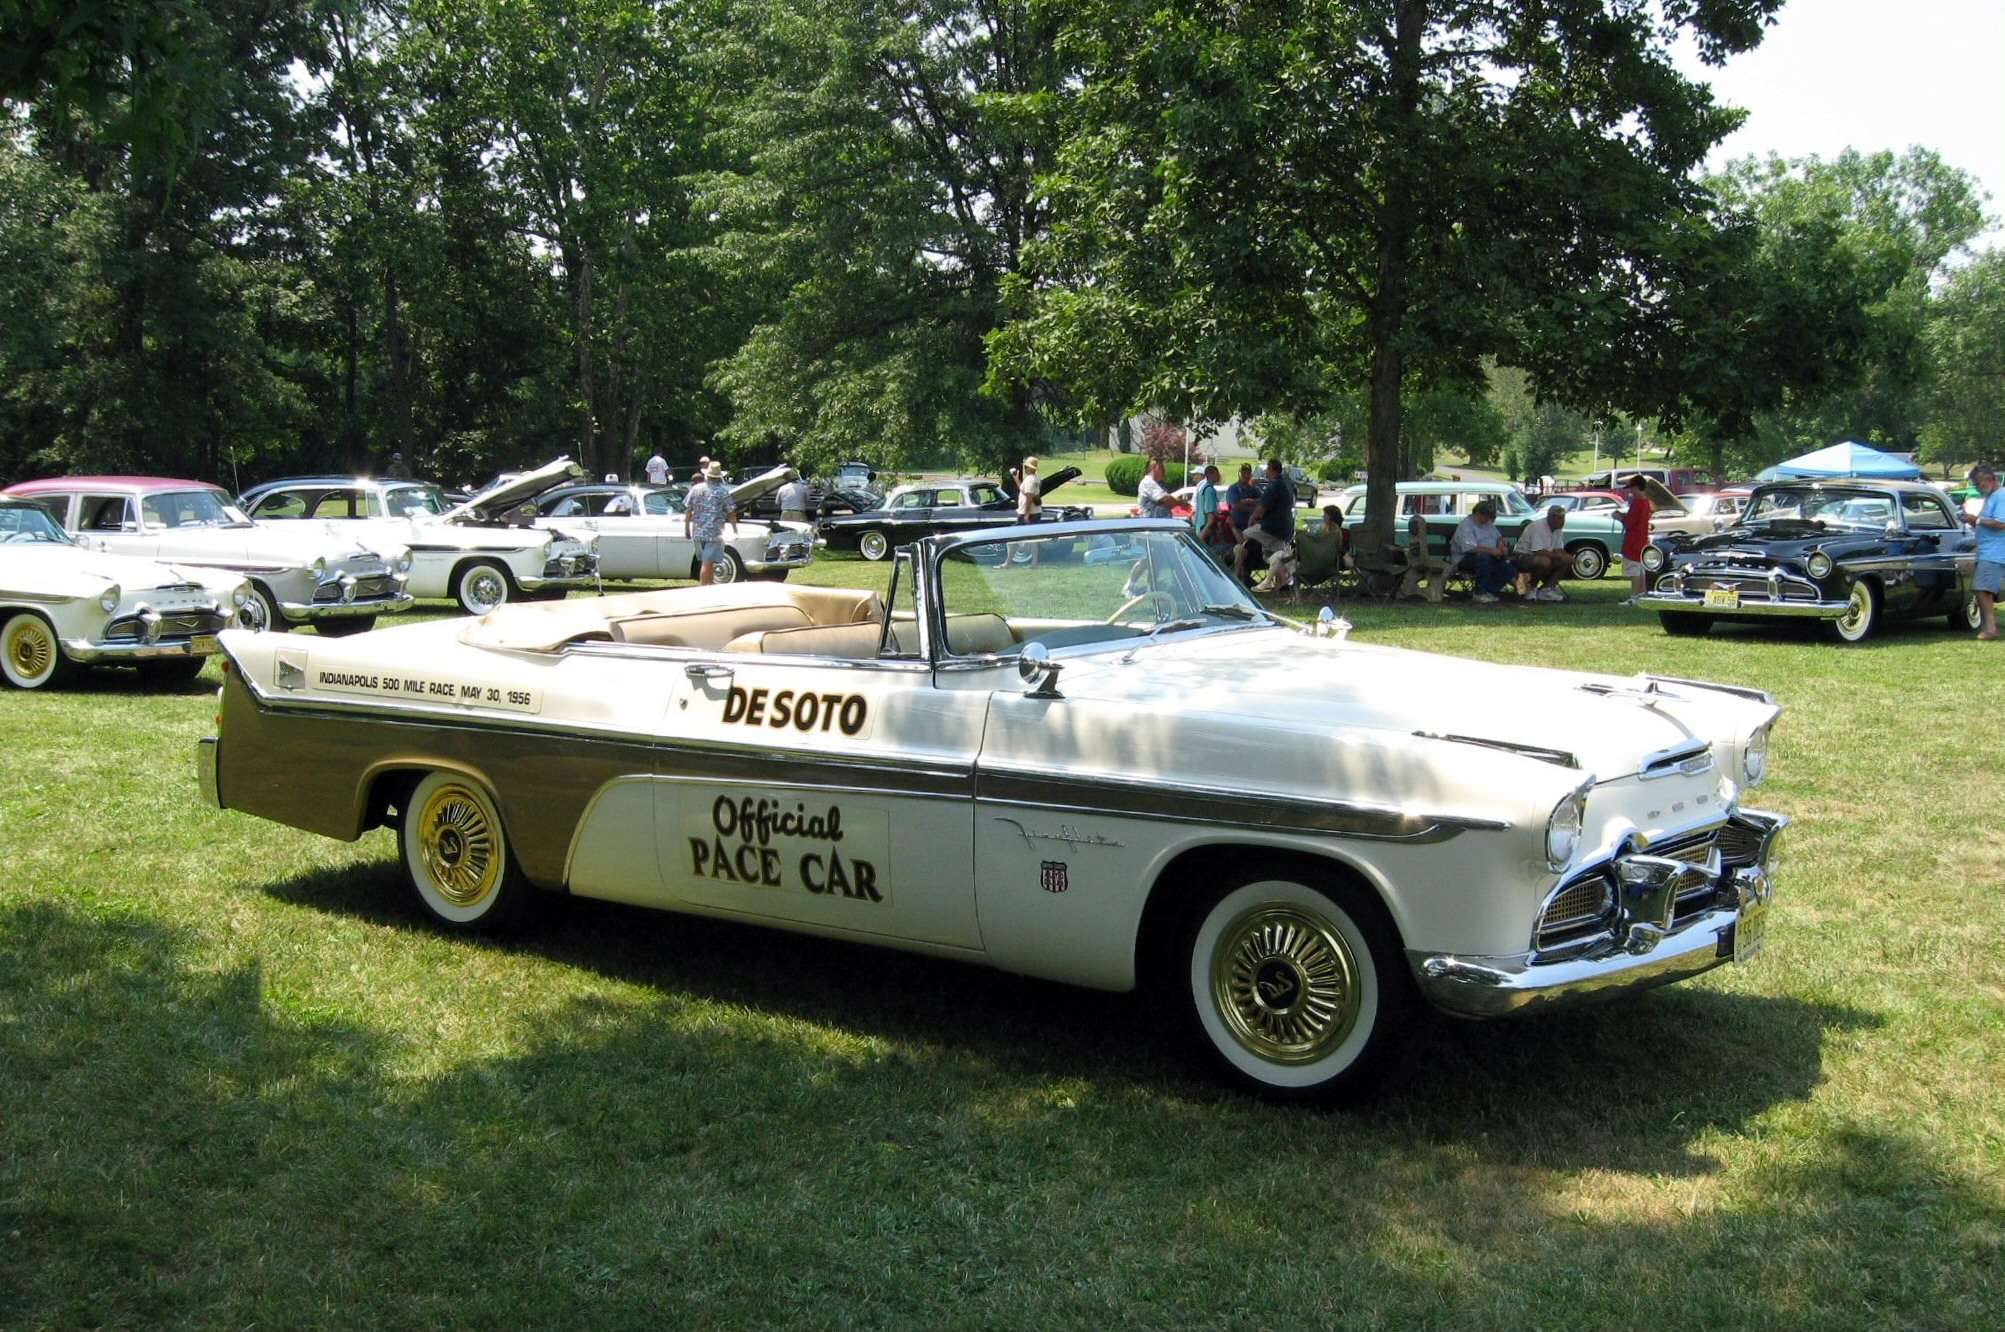 1956 desoto pace car - File 1956 Desoto Fireflite Convertible Pace Car Top Down Jpg